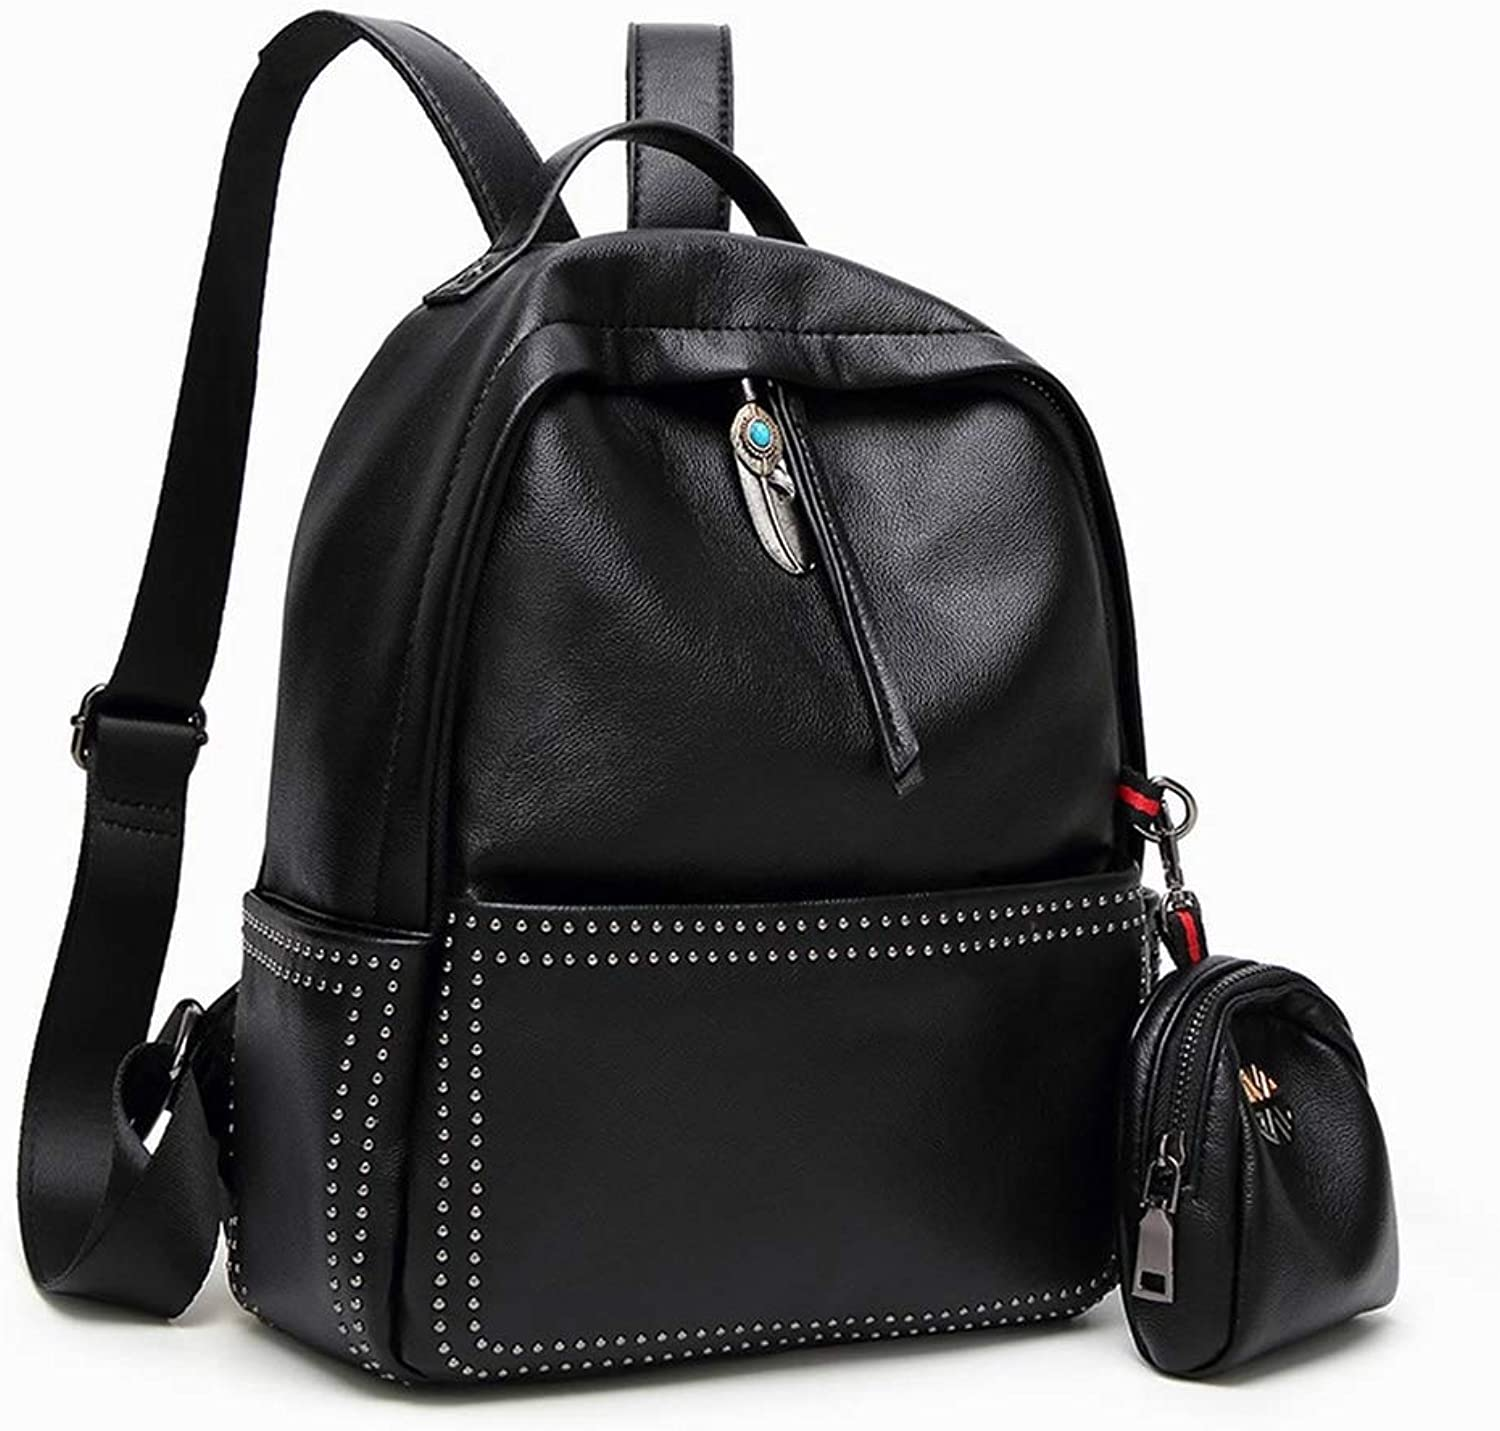 Creative Fashion Fashion MultiPurpose Backpack Women All Match Patent Leather Mirror Student Bag LargeCapacity Backpack Bag for Women, Black